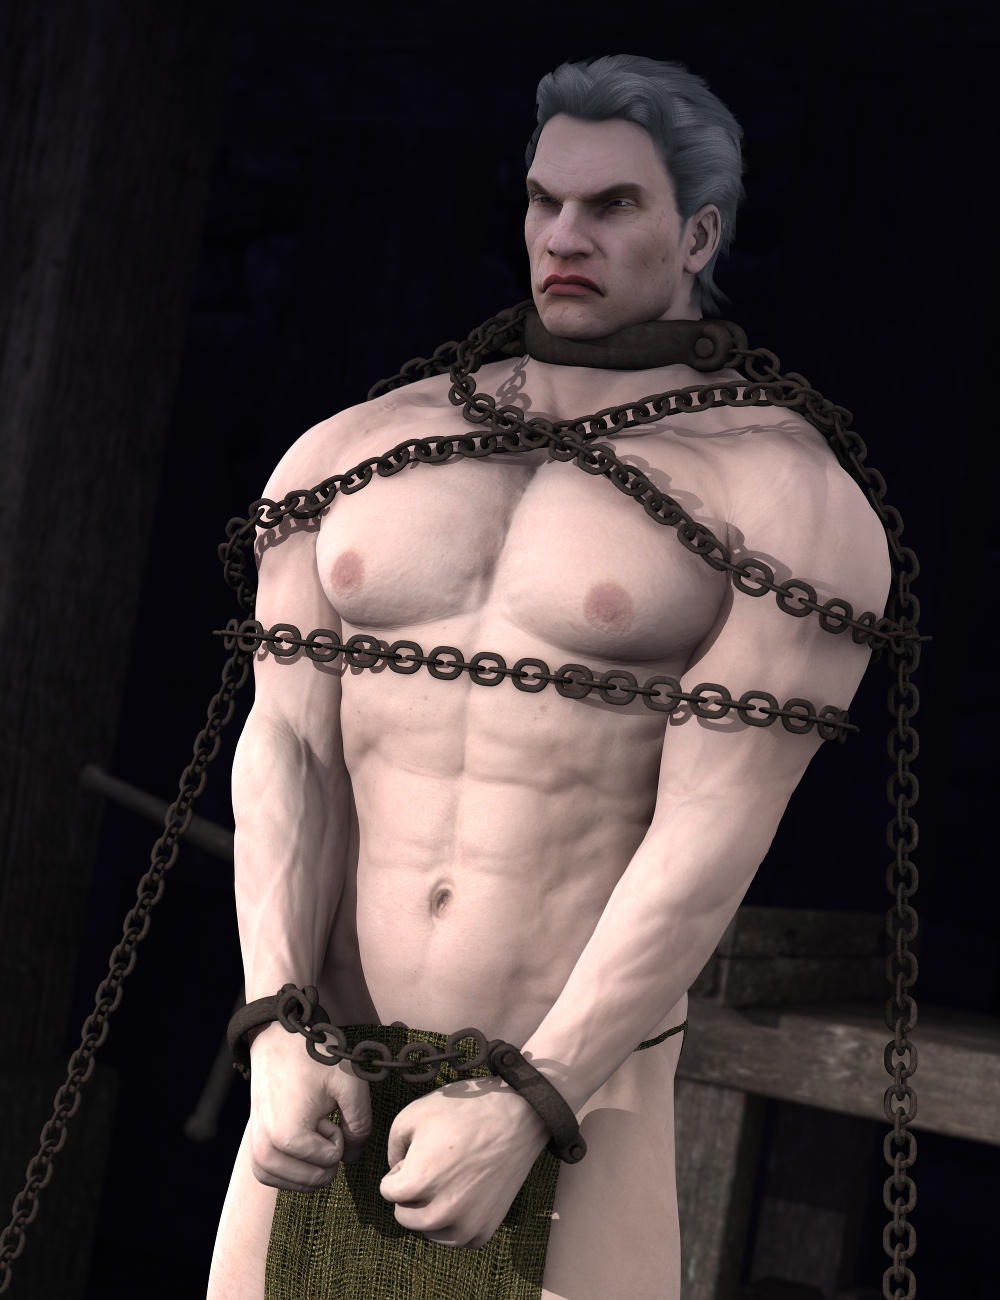 Shackled! For Genesis 2 by: Sickleyield, 3D Models by Daz 3D